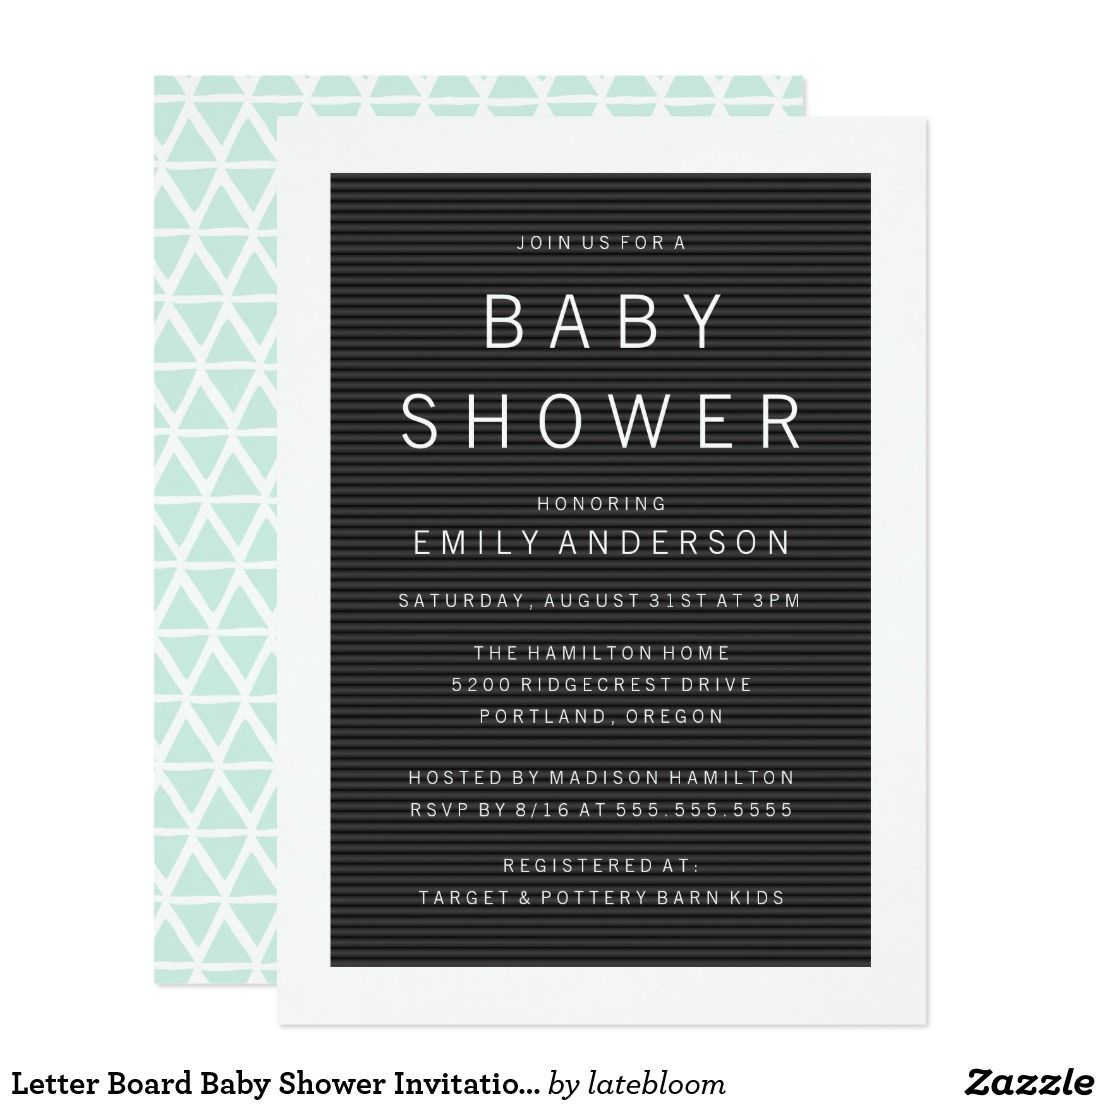 Letter Board Baby Shower Invitations  Mom And Kids Stuffs And